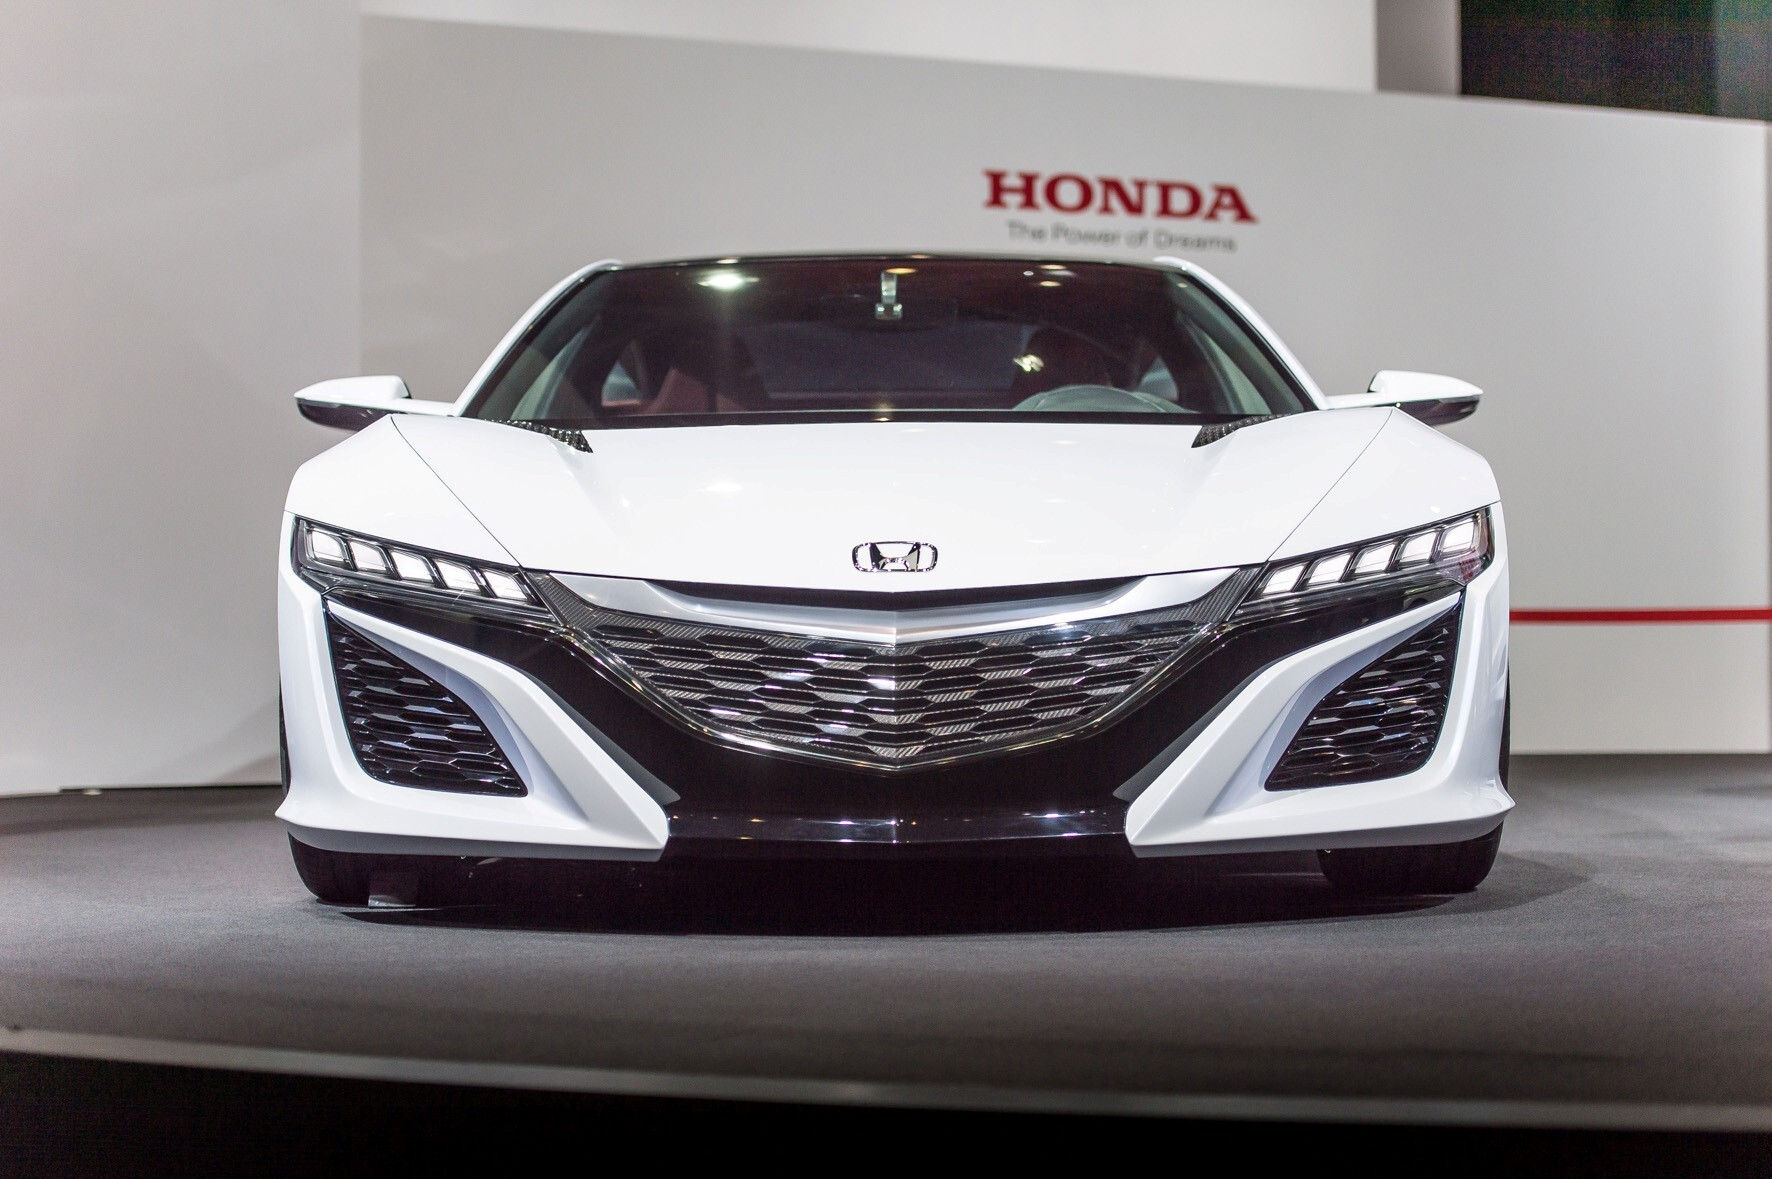 Honda Nsx Concept White Car Photo Hd Wallpapers